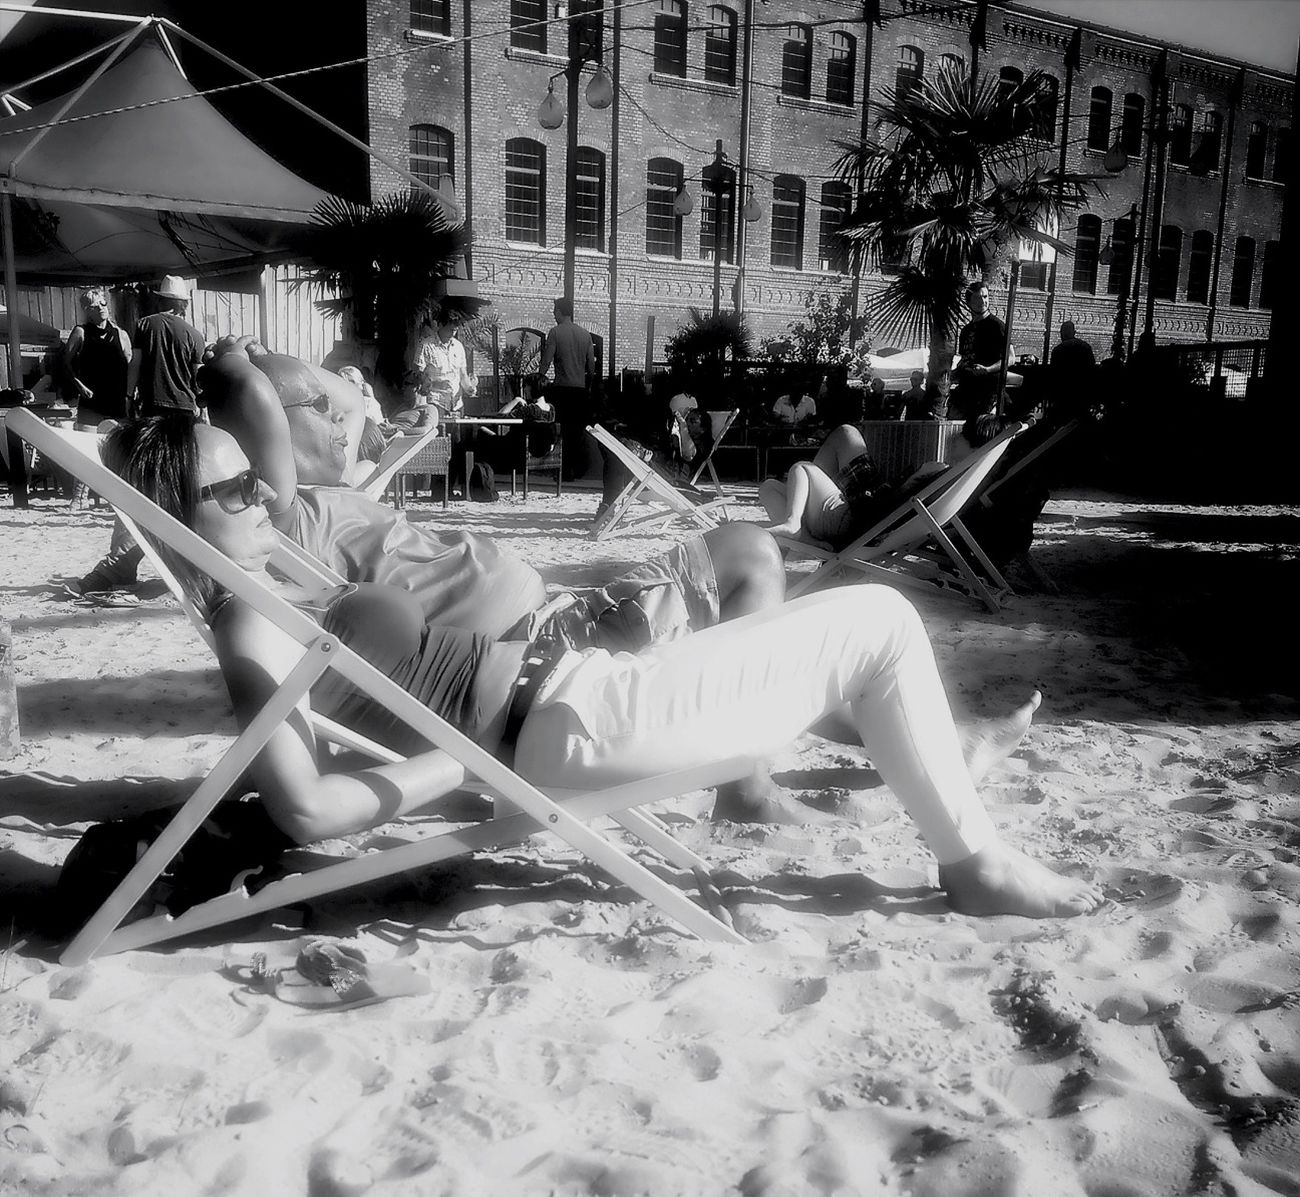 Streetphotography Chillaxing Blackandwhite Enjoying The Sun